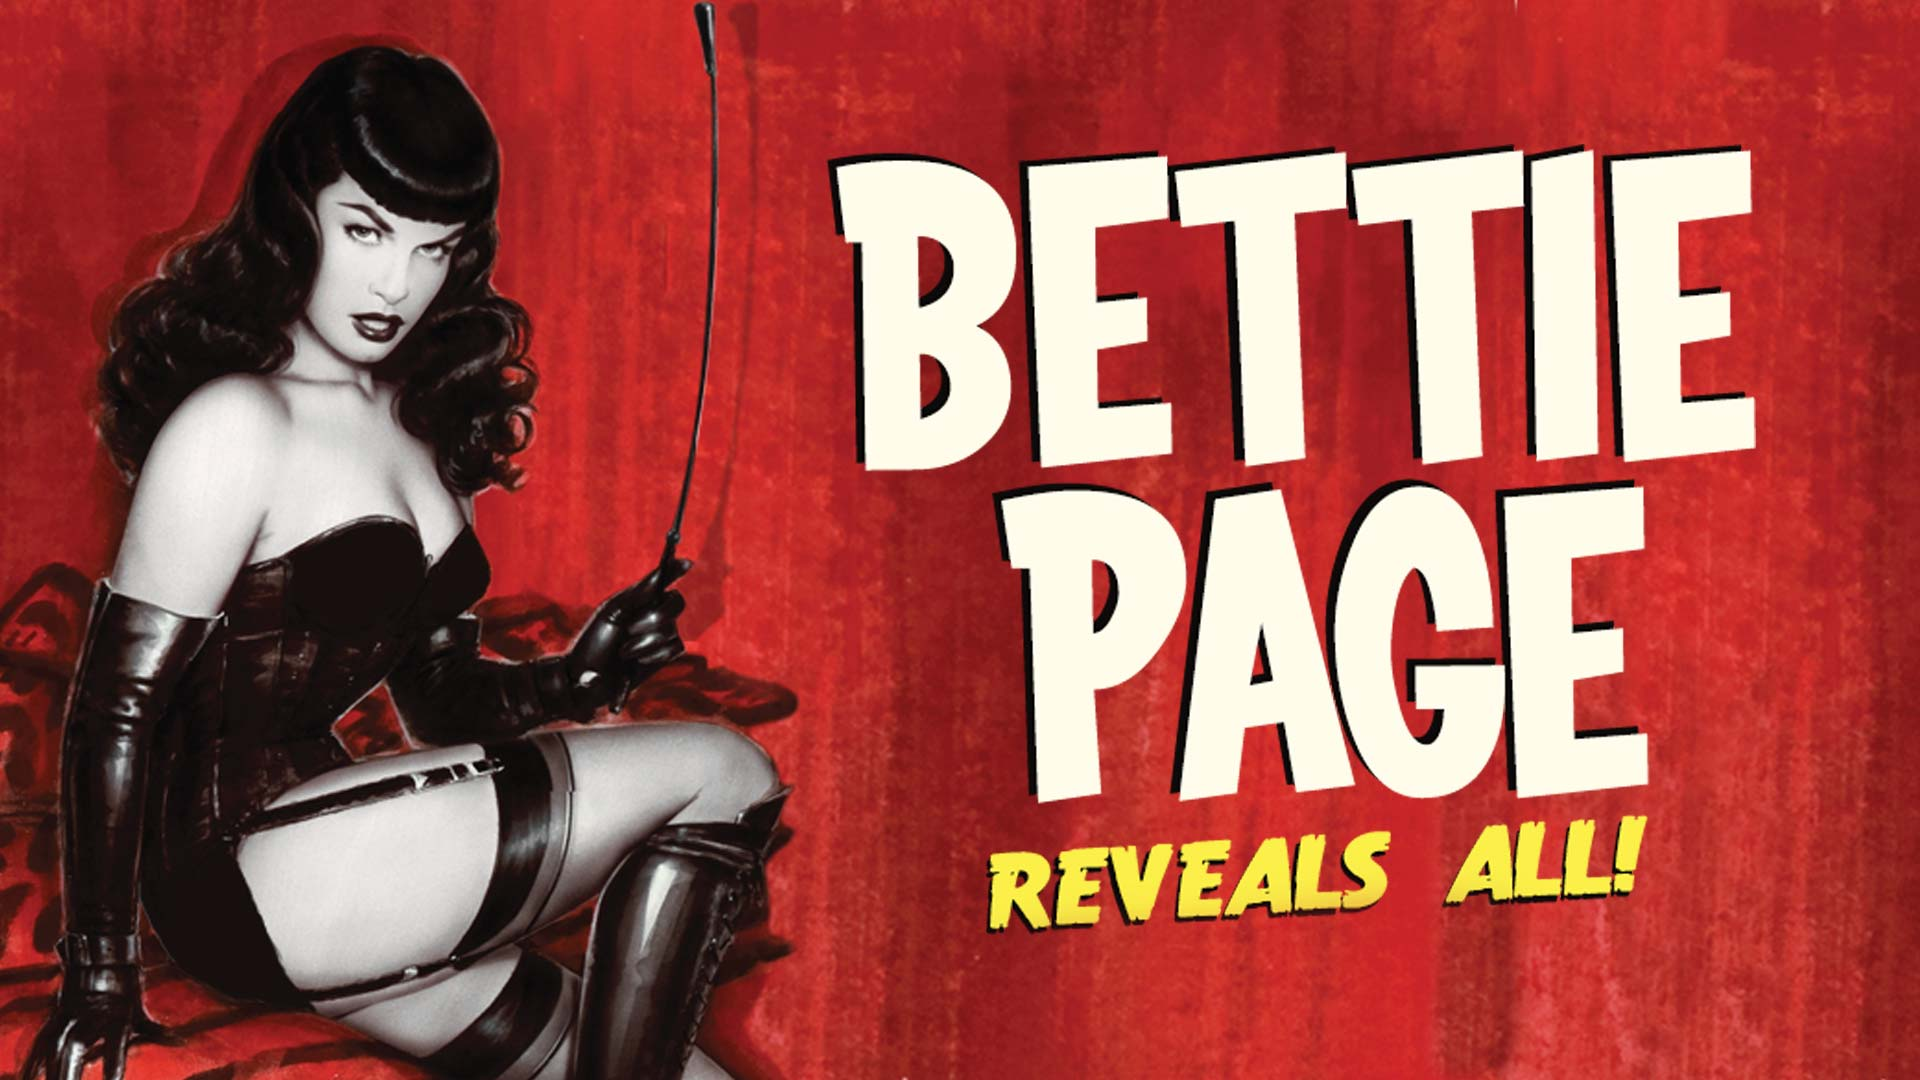 Bettie Page Reveals All - image